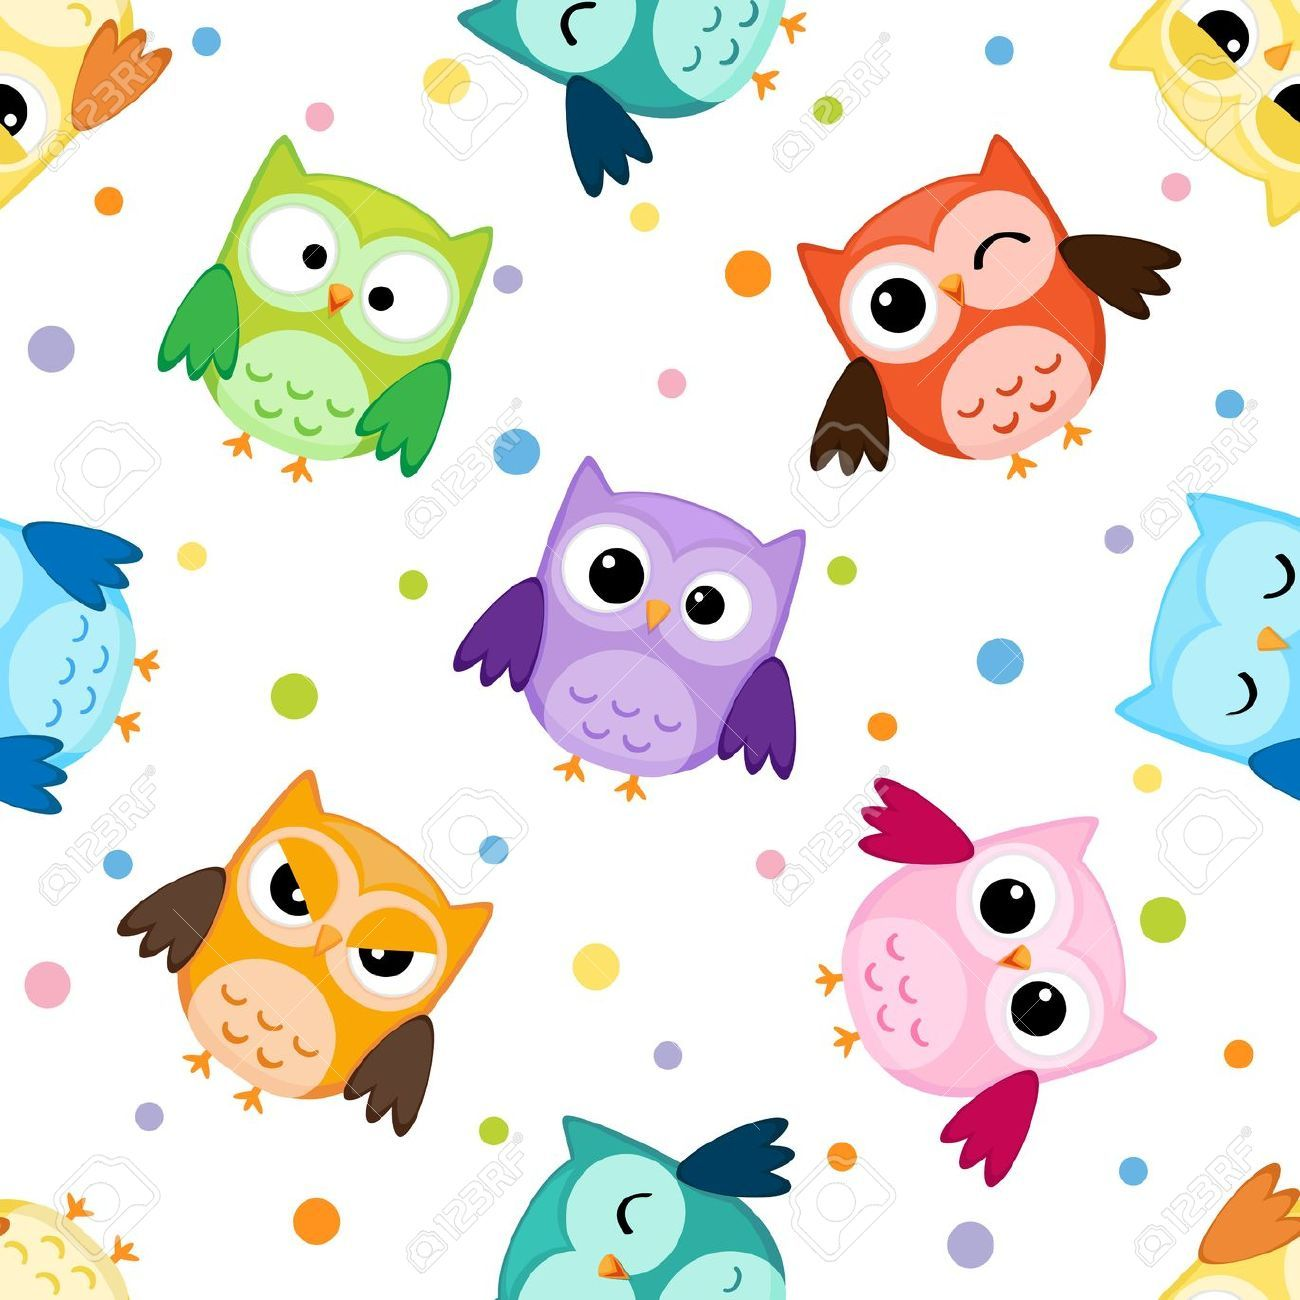 11597407 seamless pattern with colorful owls stock vector owl 11597407 seamless pattern with colorful owls stock vector voltagebd Gallery